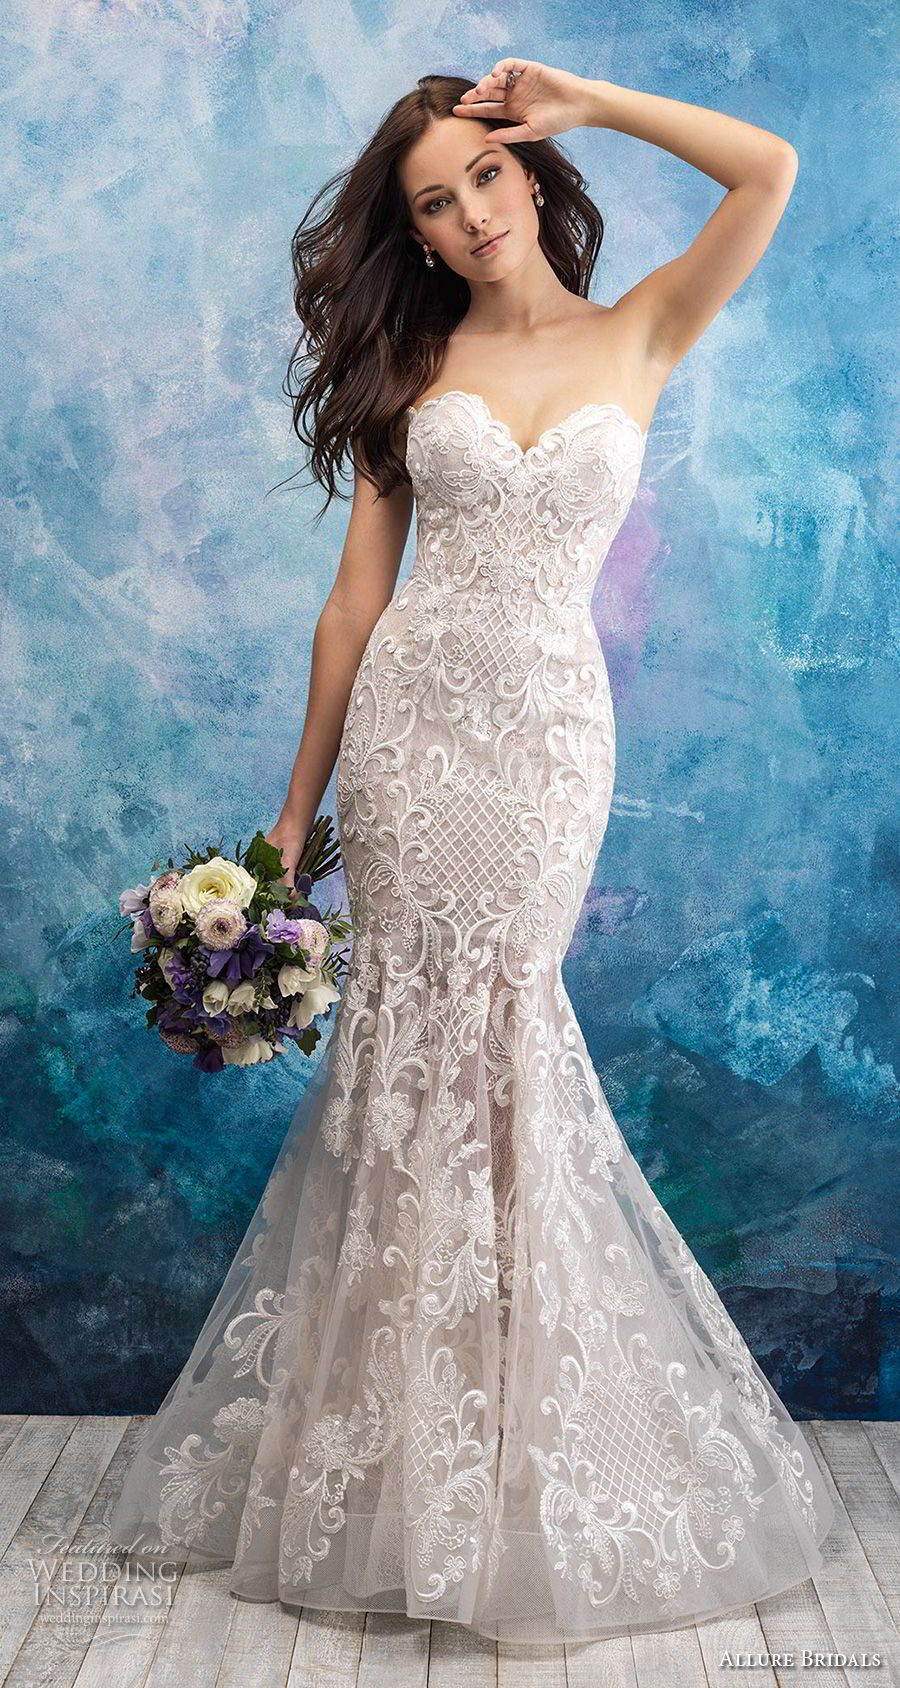 Allure Bridals Fall 2018 Wedding Dresses Wedding Inspirasi Allure Wedding Dresses Allure Bridal Gowns Allure Bridal